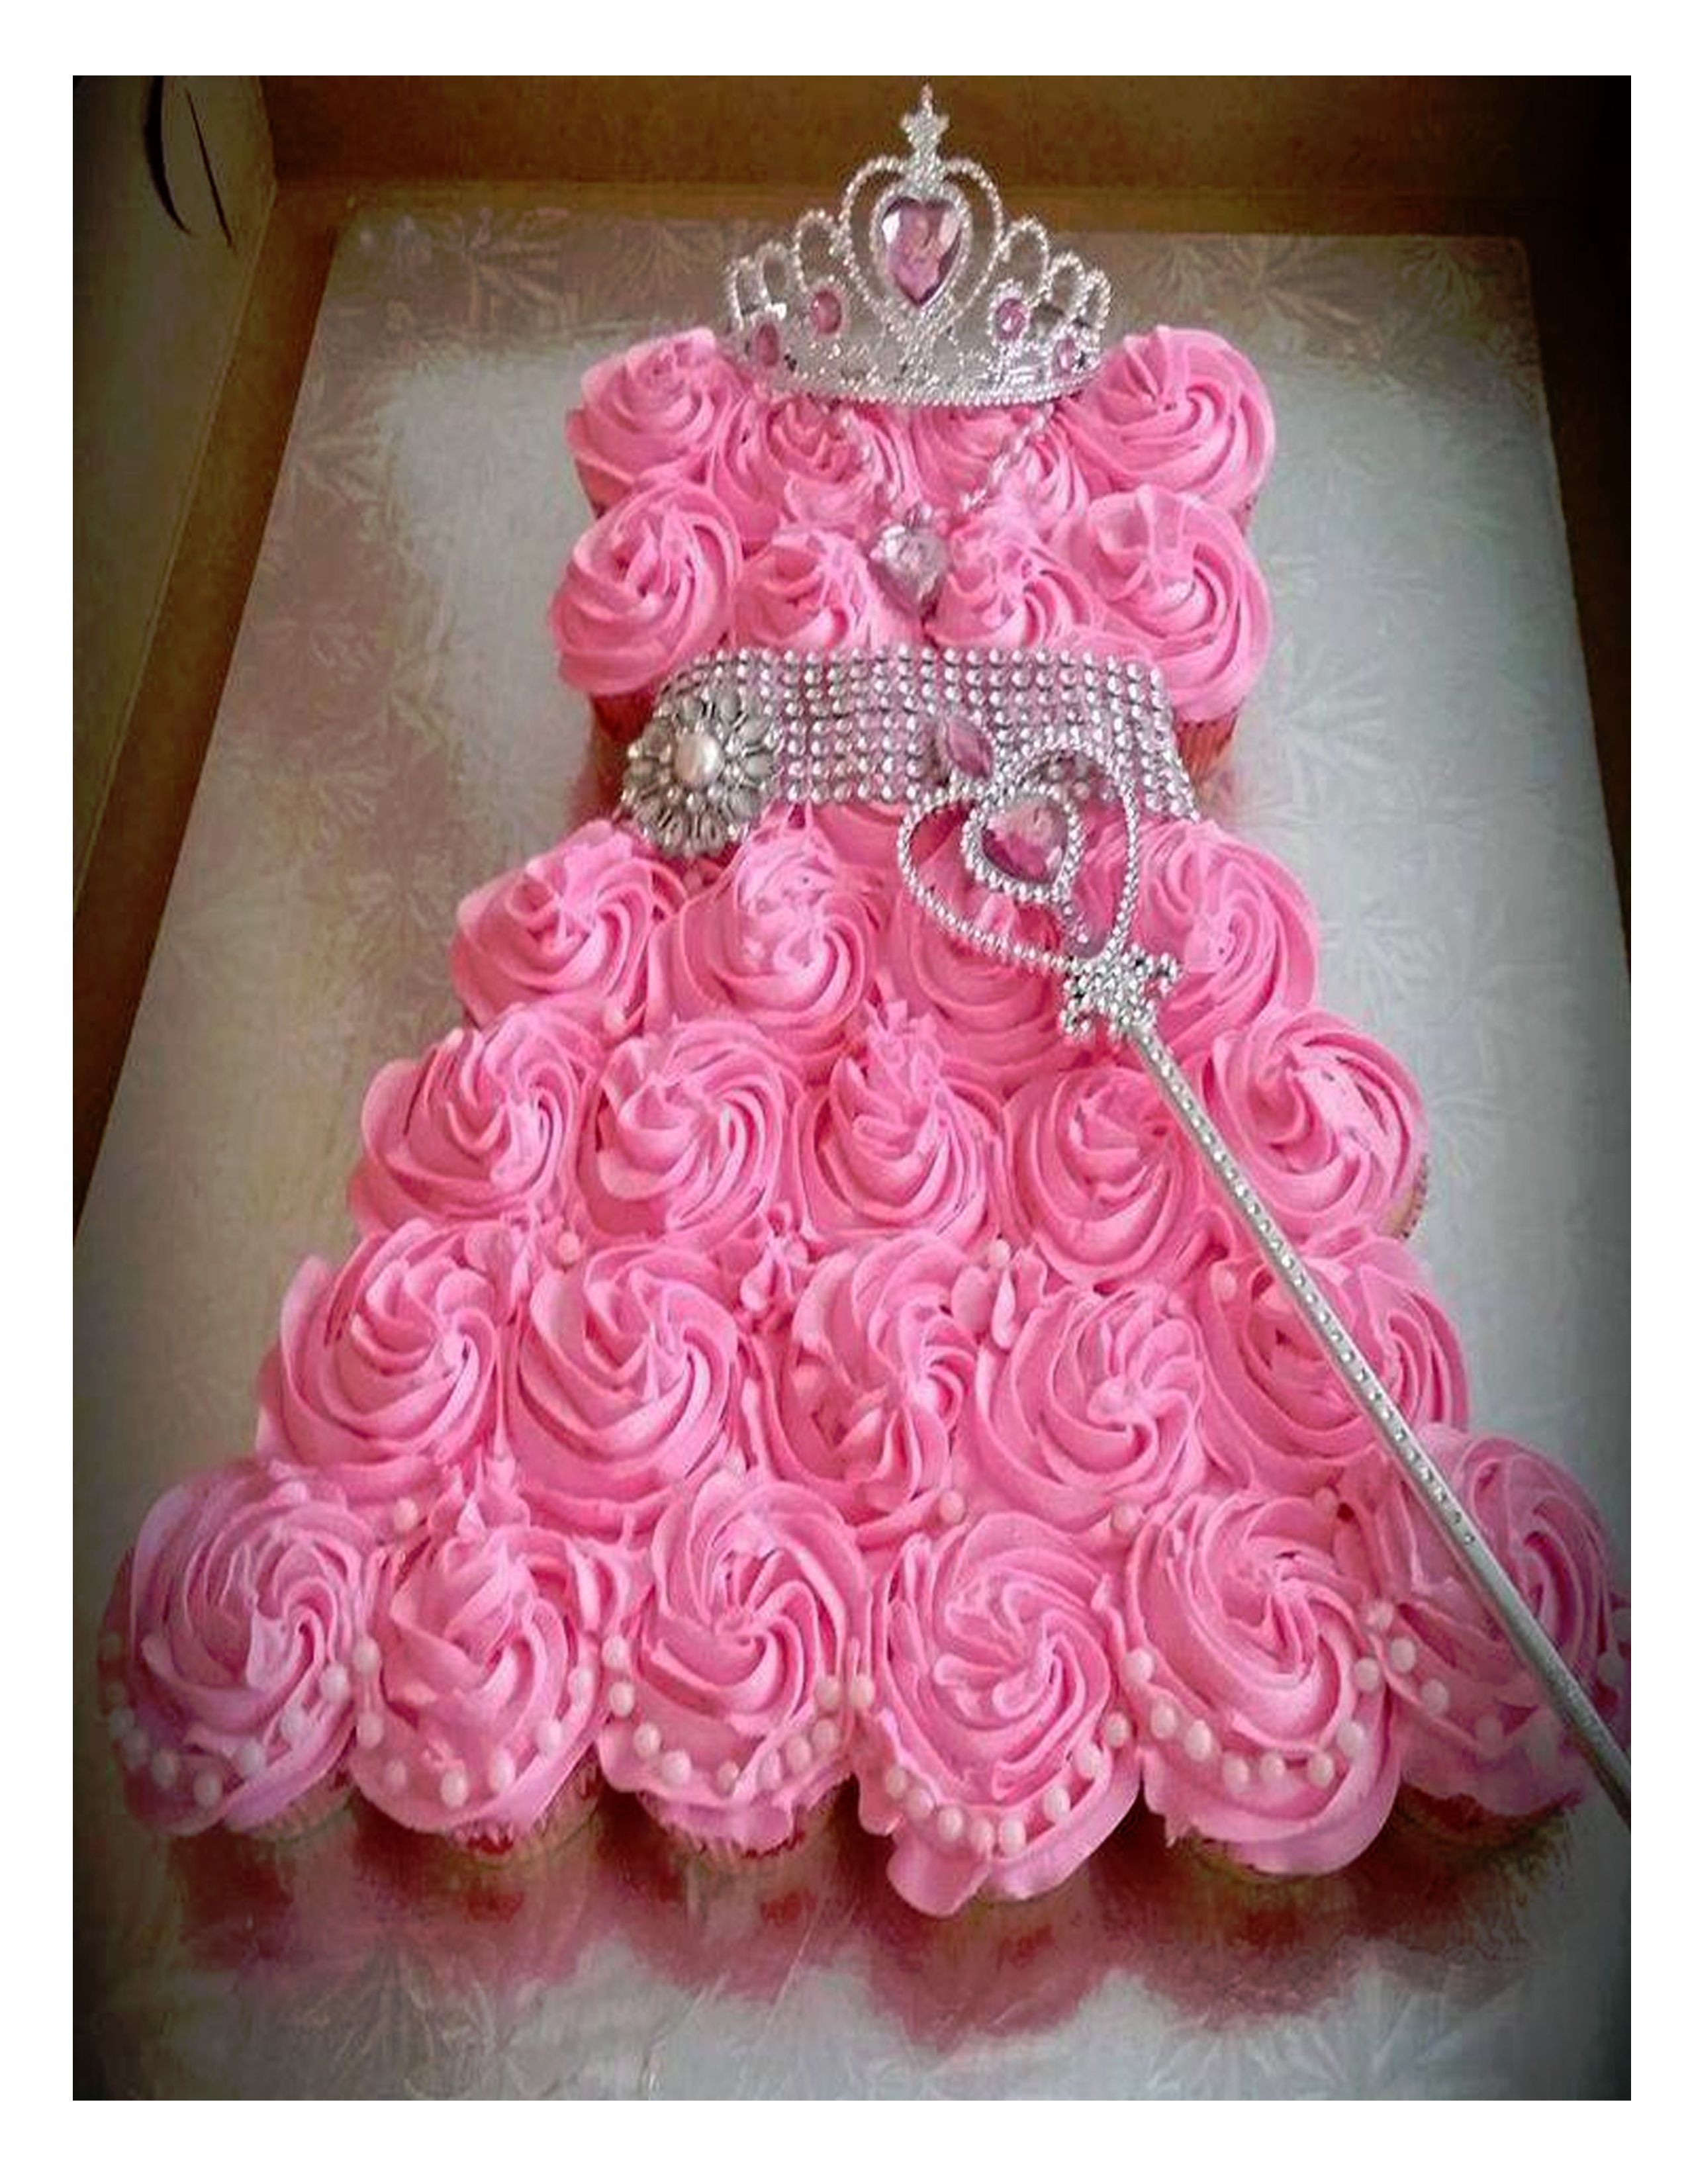 Pin By Lisa Mcdonald On Cake Decor Pinterest Compleanno Festa